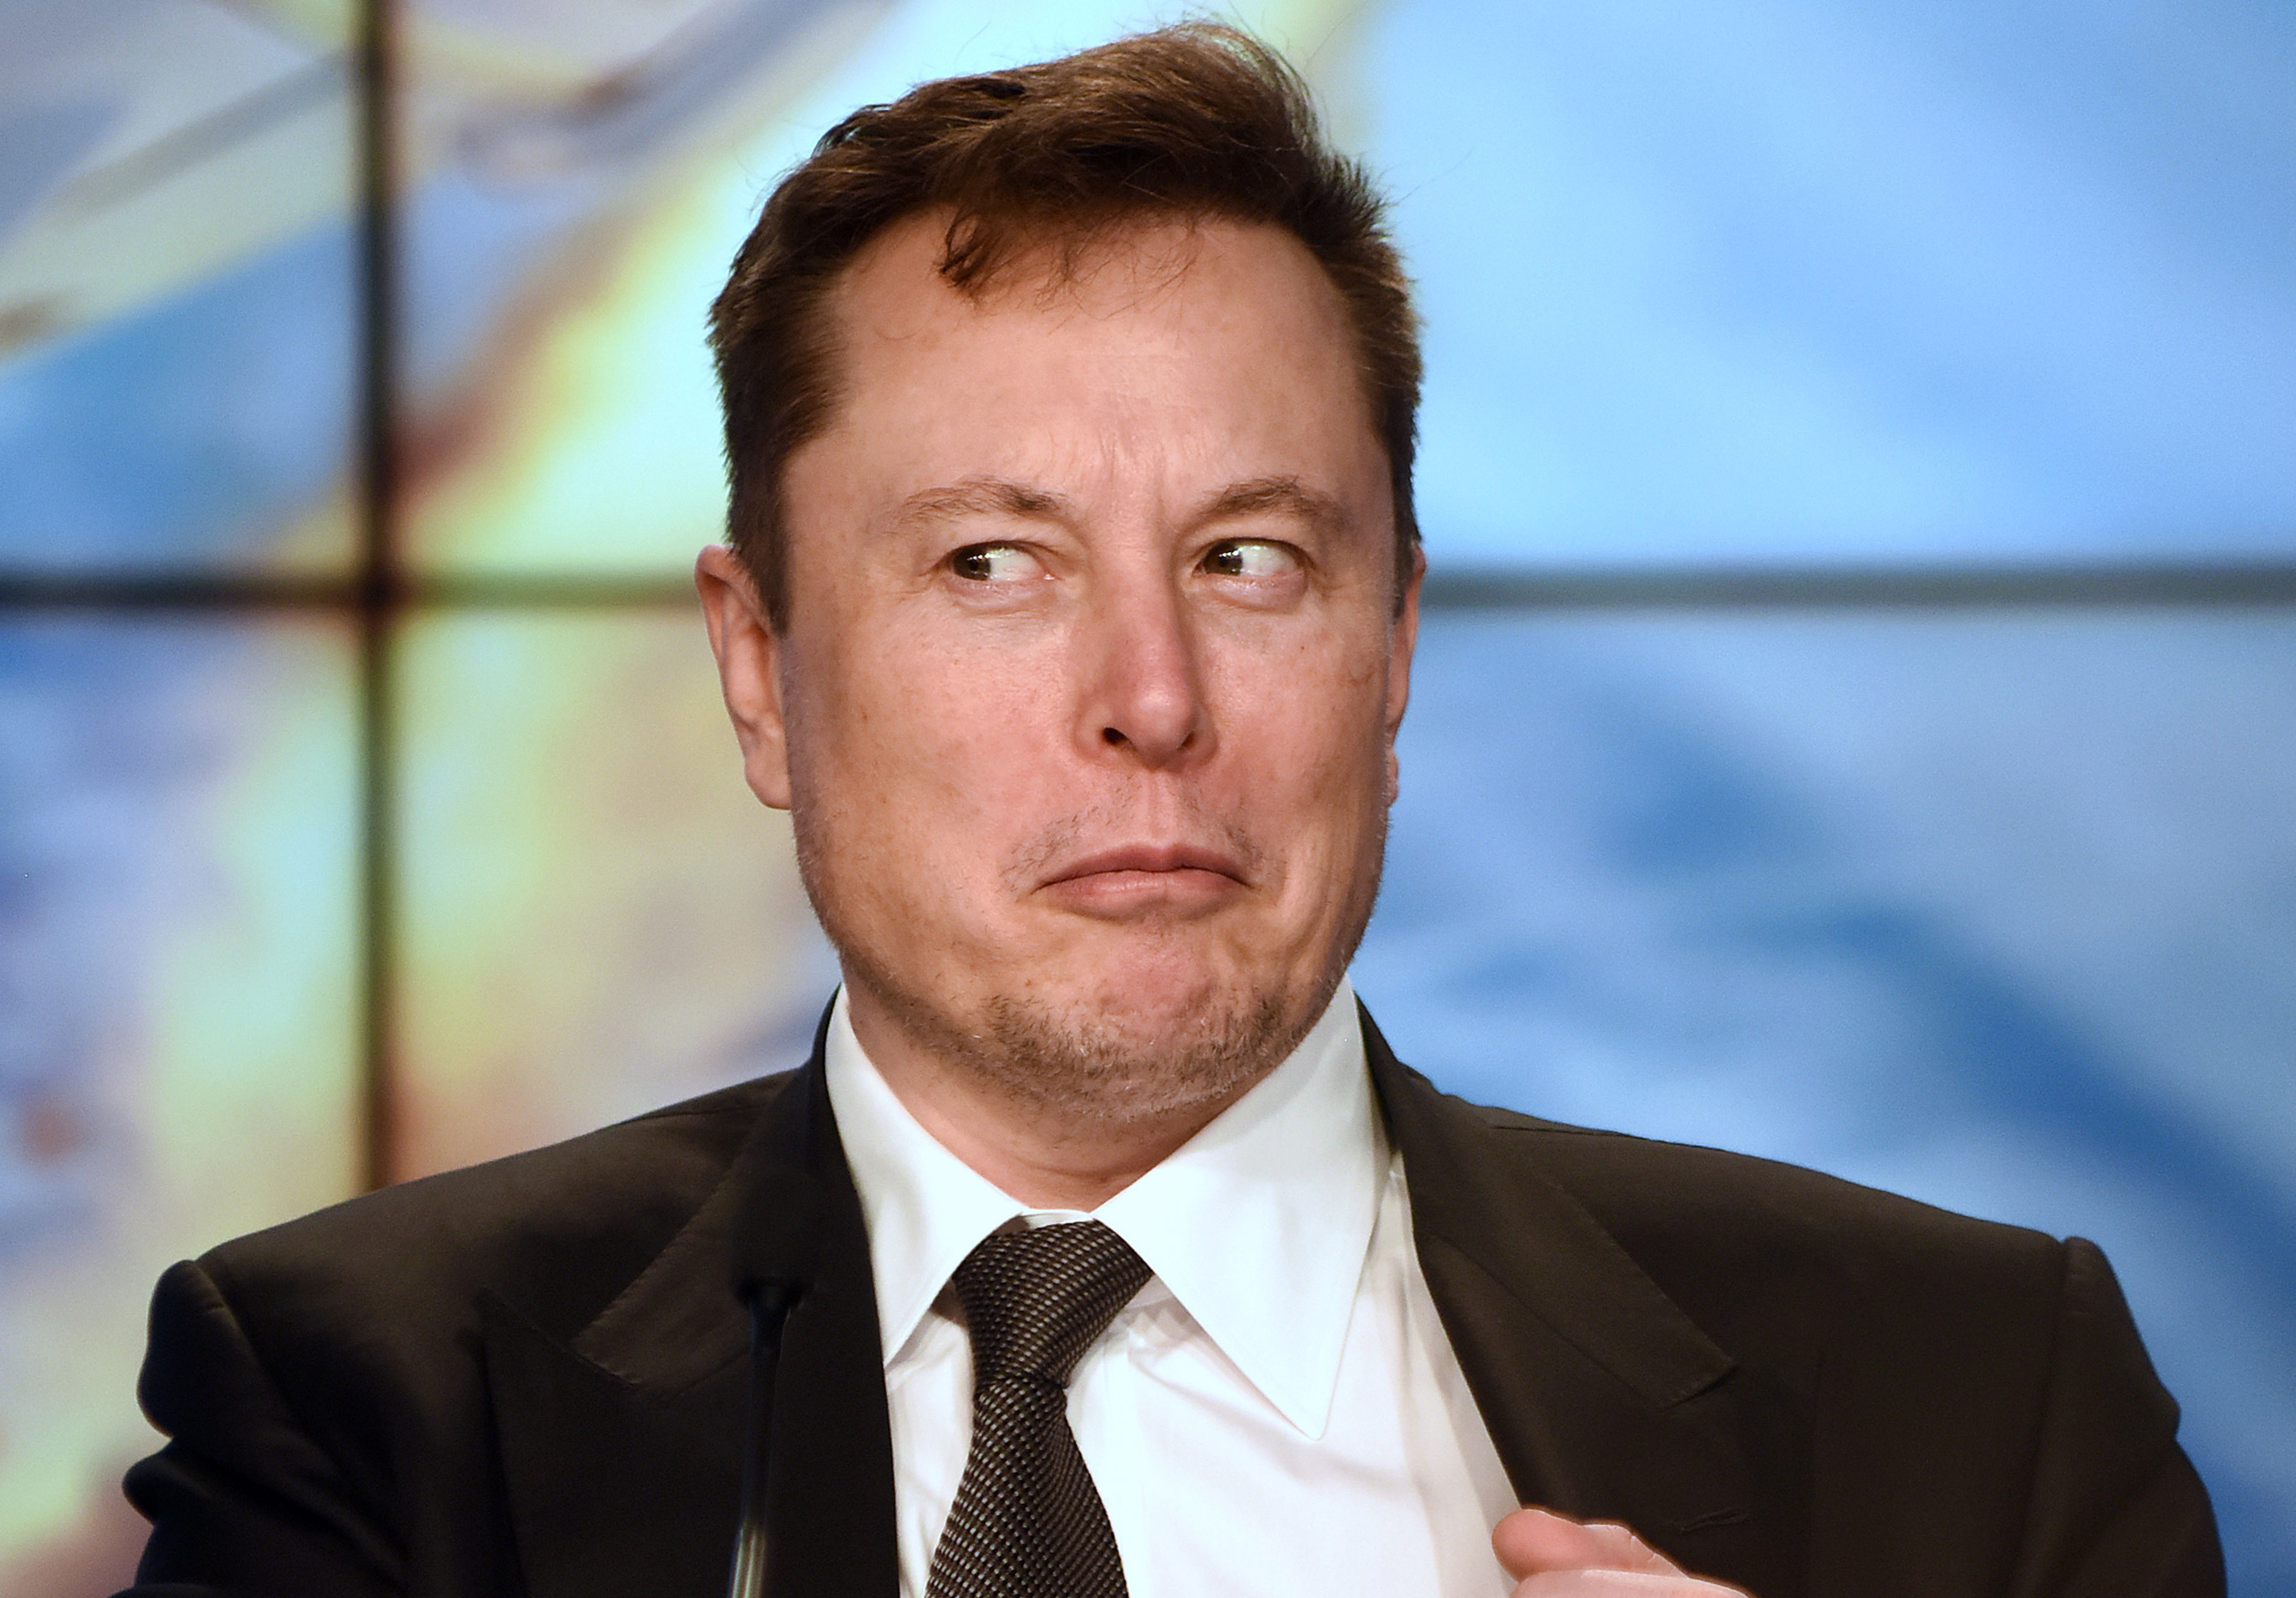 Elon Musk's Advice to Jack Dorsey on Fixing Twitter Seems Trifling at Best